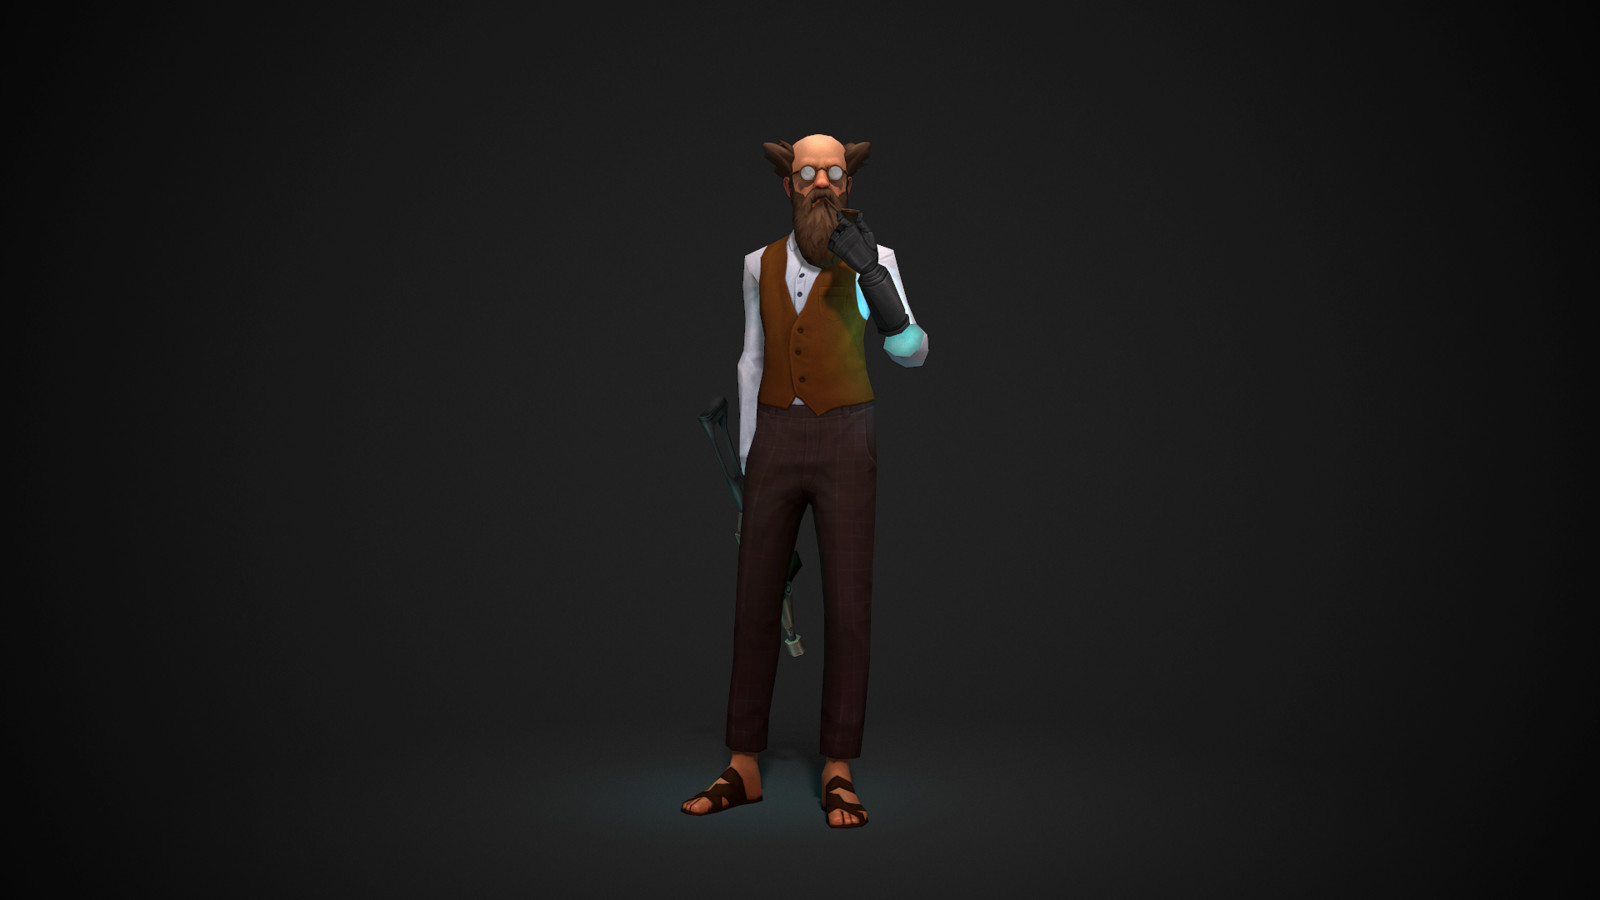 Man and Gun - Low Poly Character